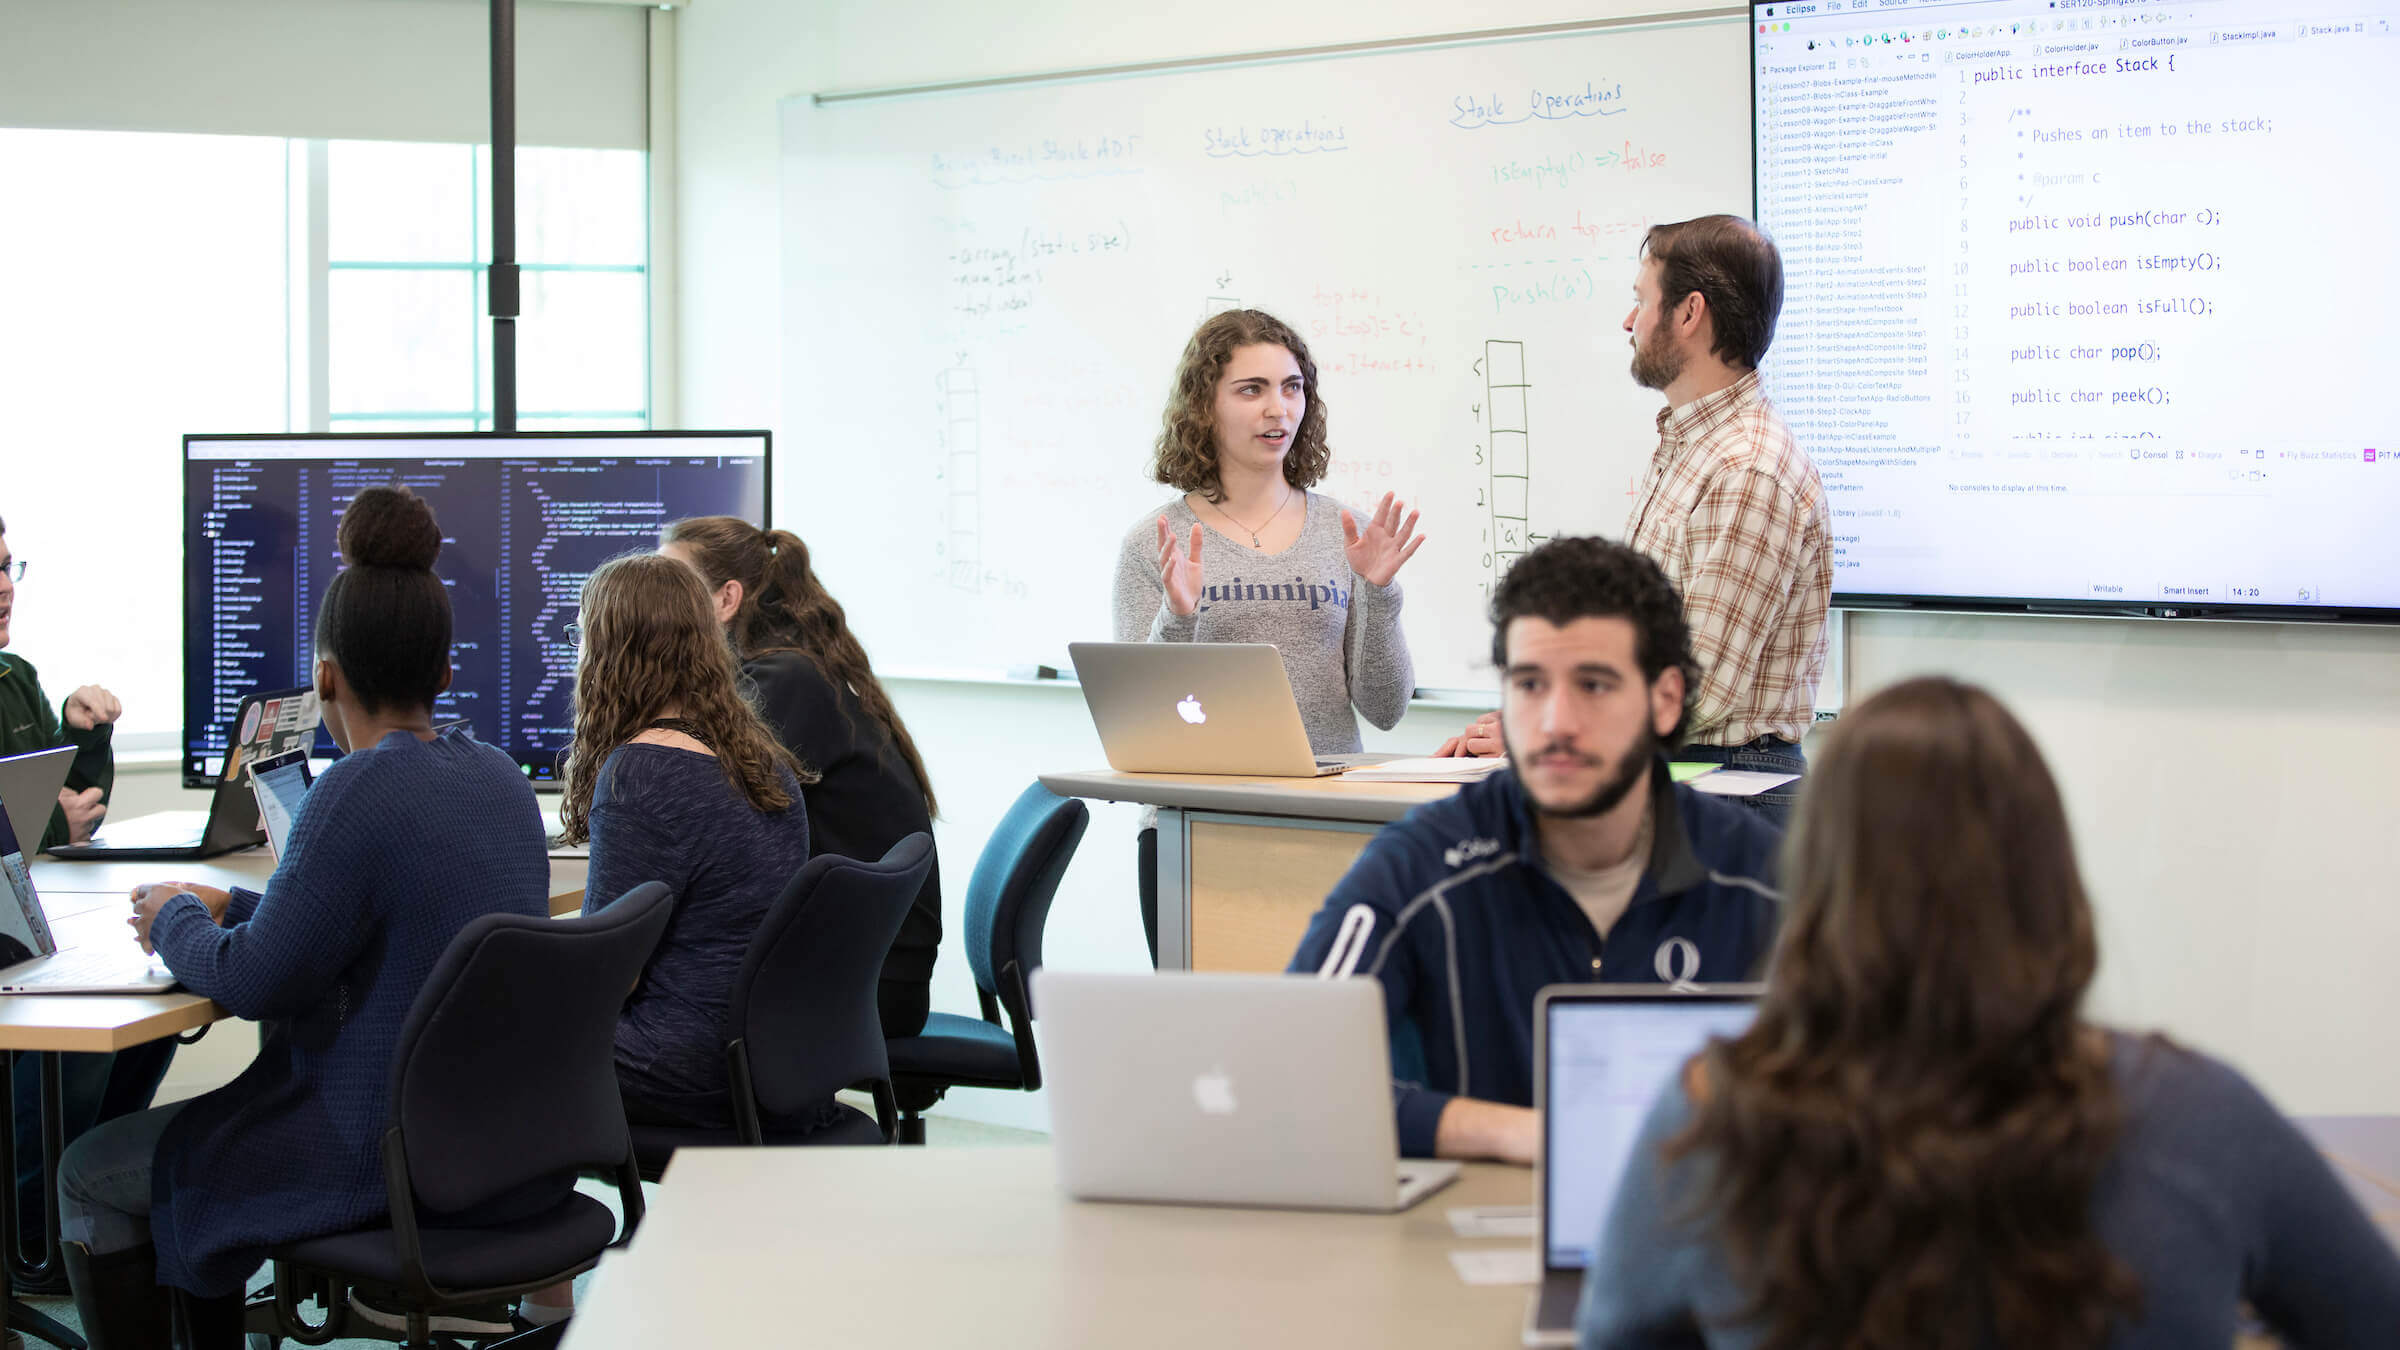 Students and professor in a classroom